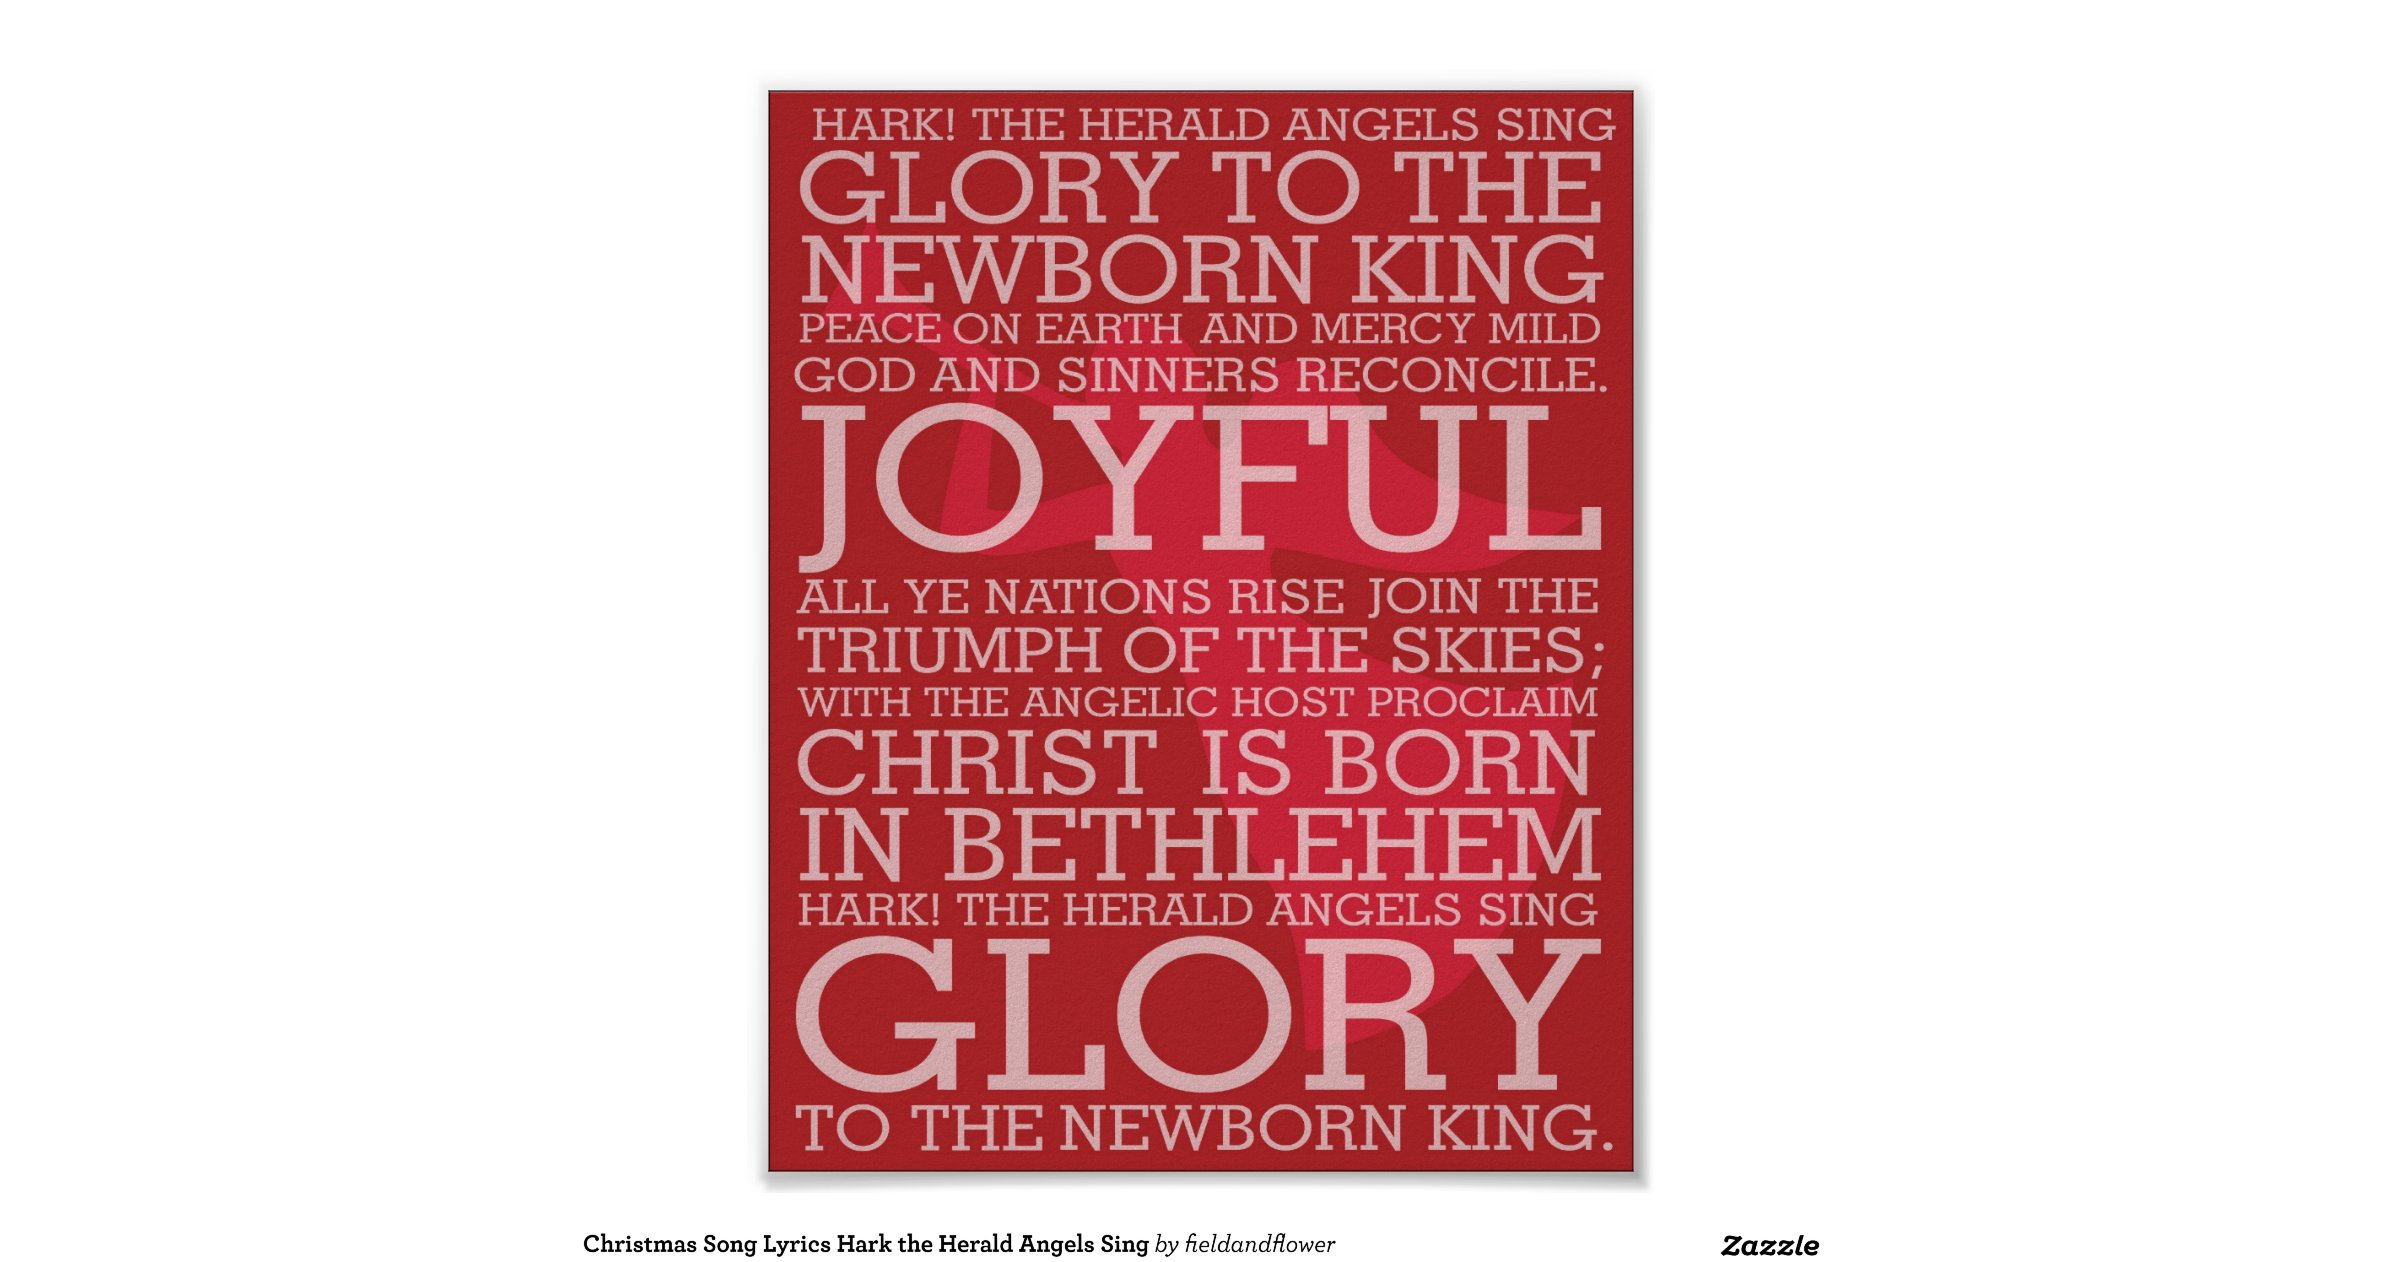 Christmas_song_lyrics_hark_the_herald_angels_sing_poster